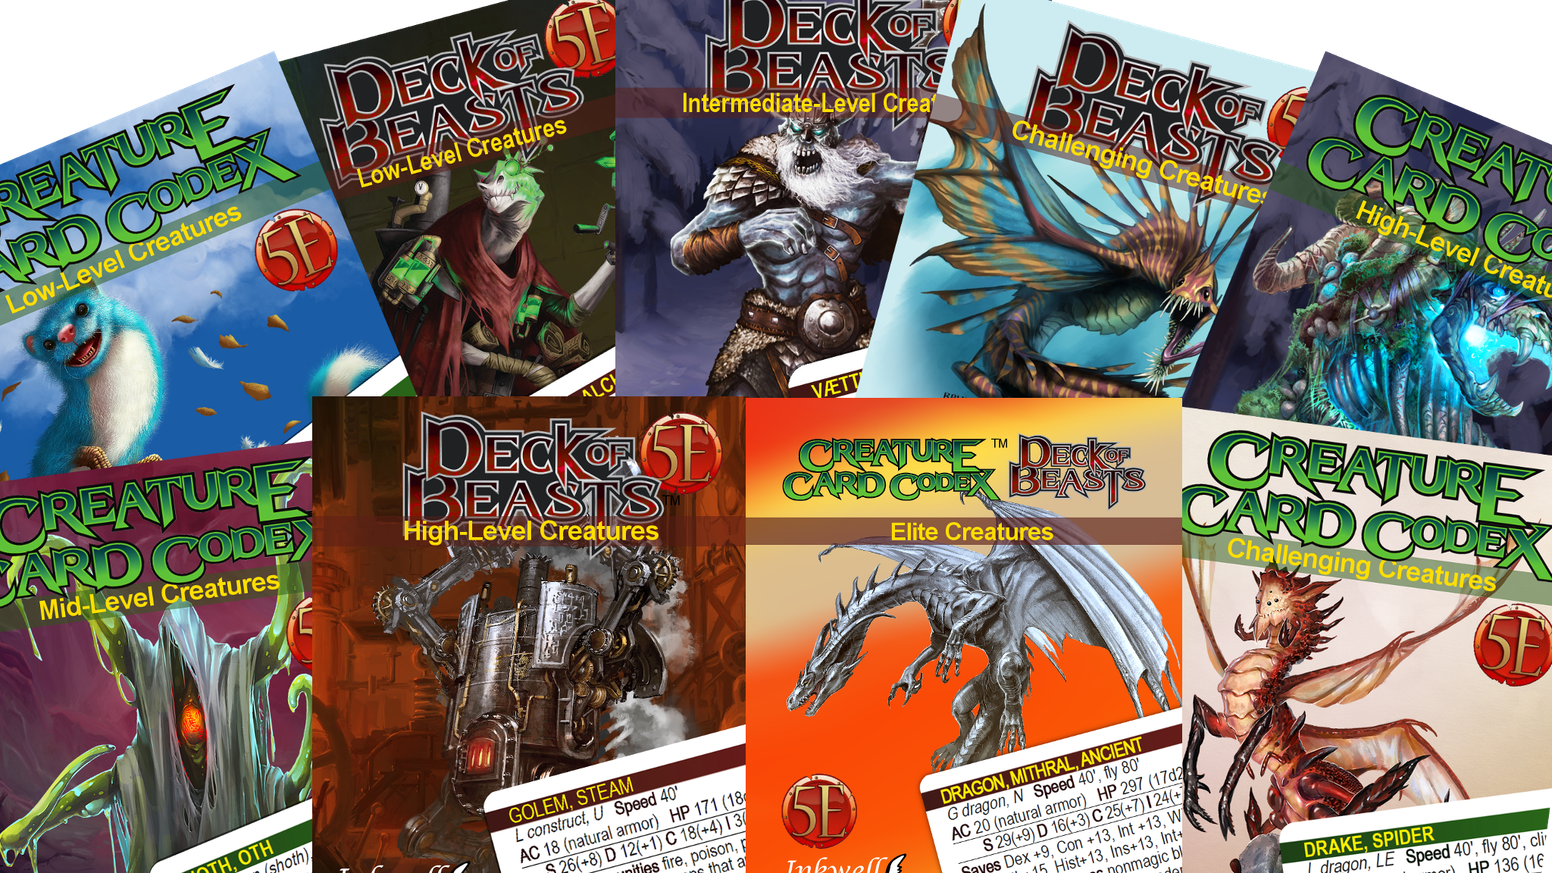 5e Creature Cards from Kobold Press's Tome of Beasts & Creature Codex.